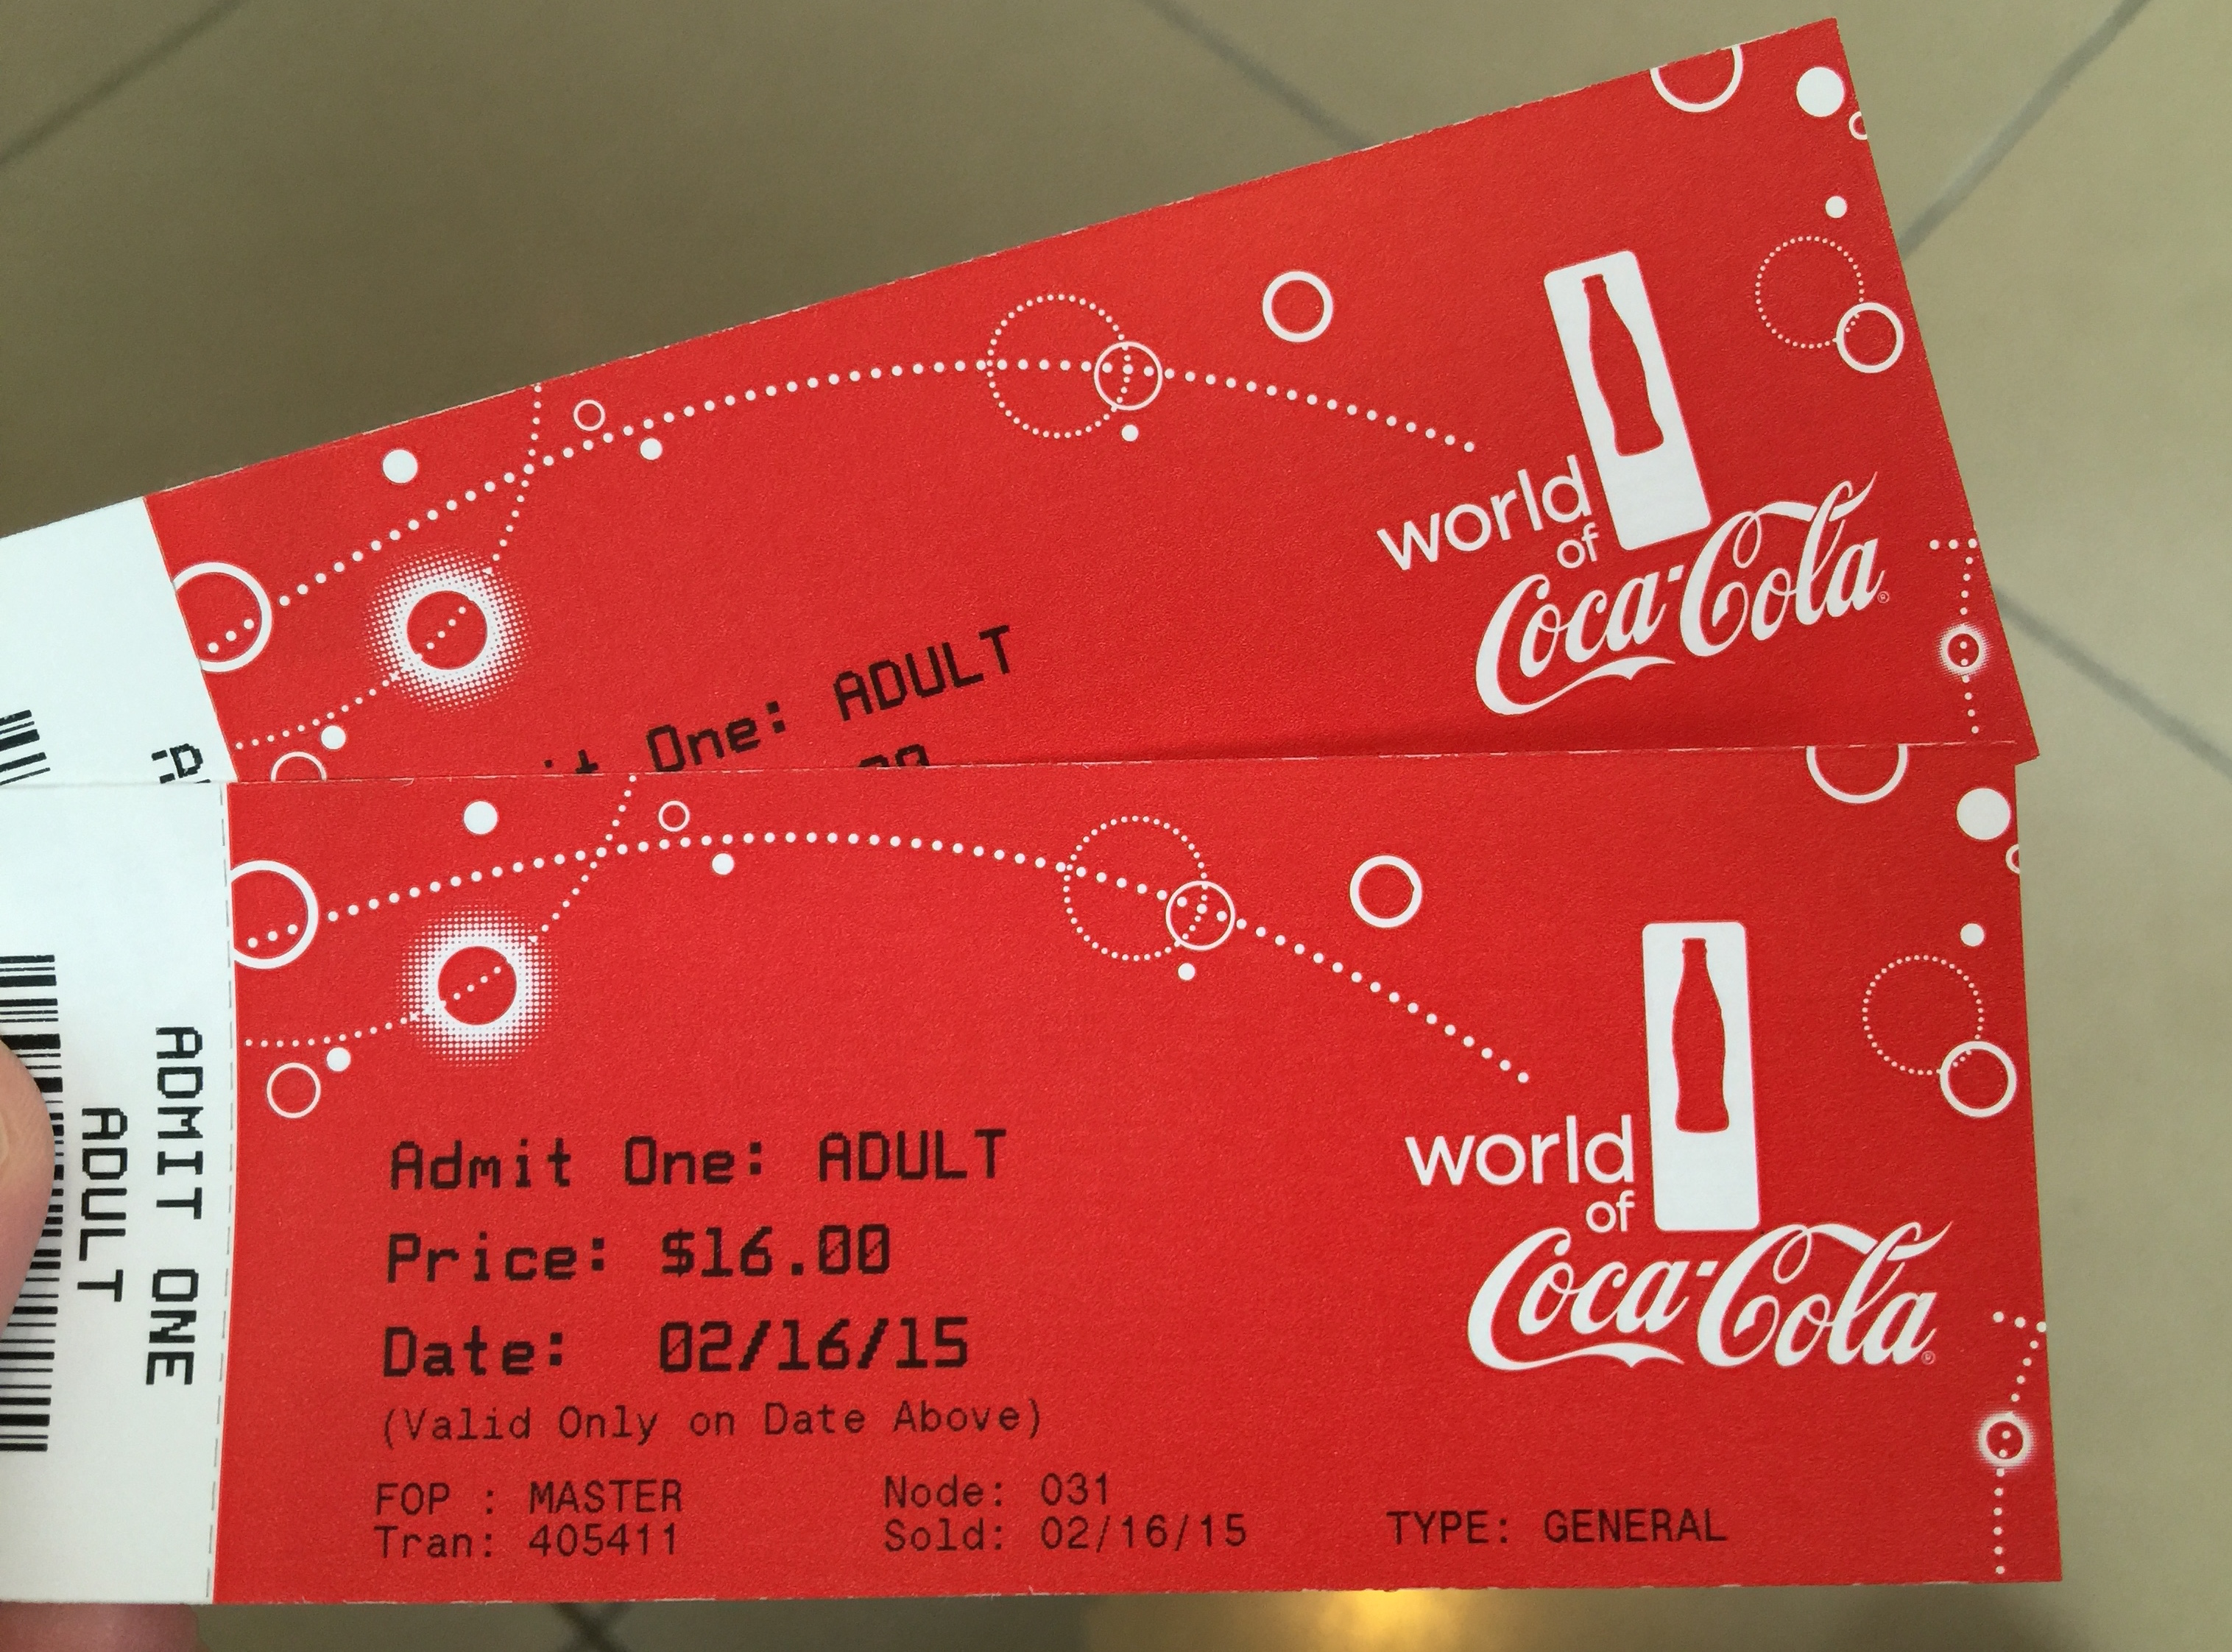 World of Coca-Cola Admission Tickets